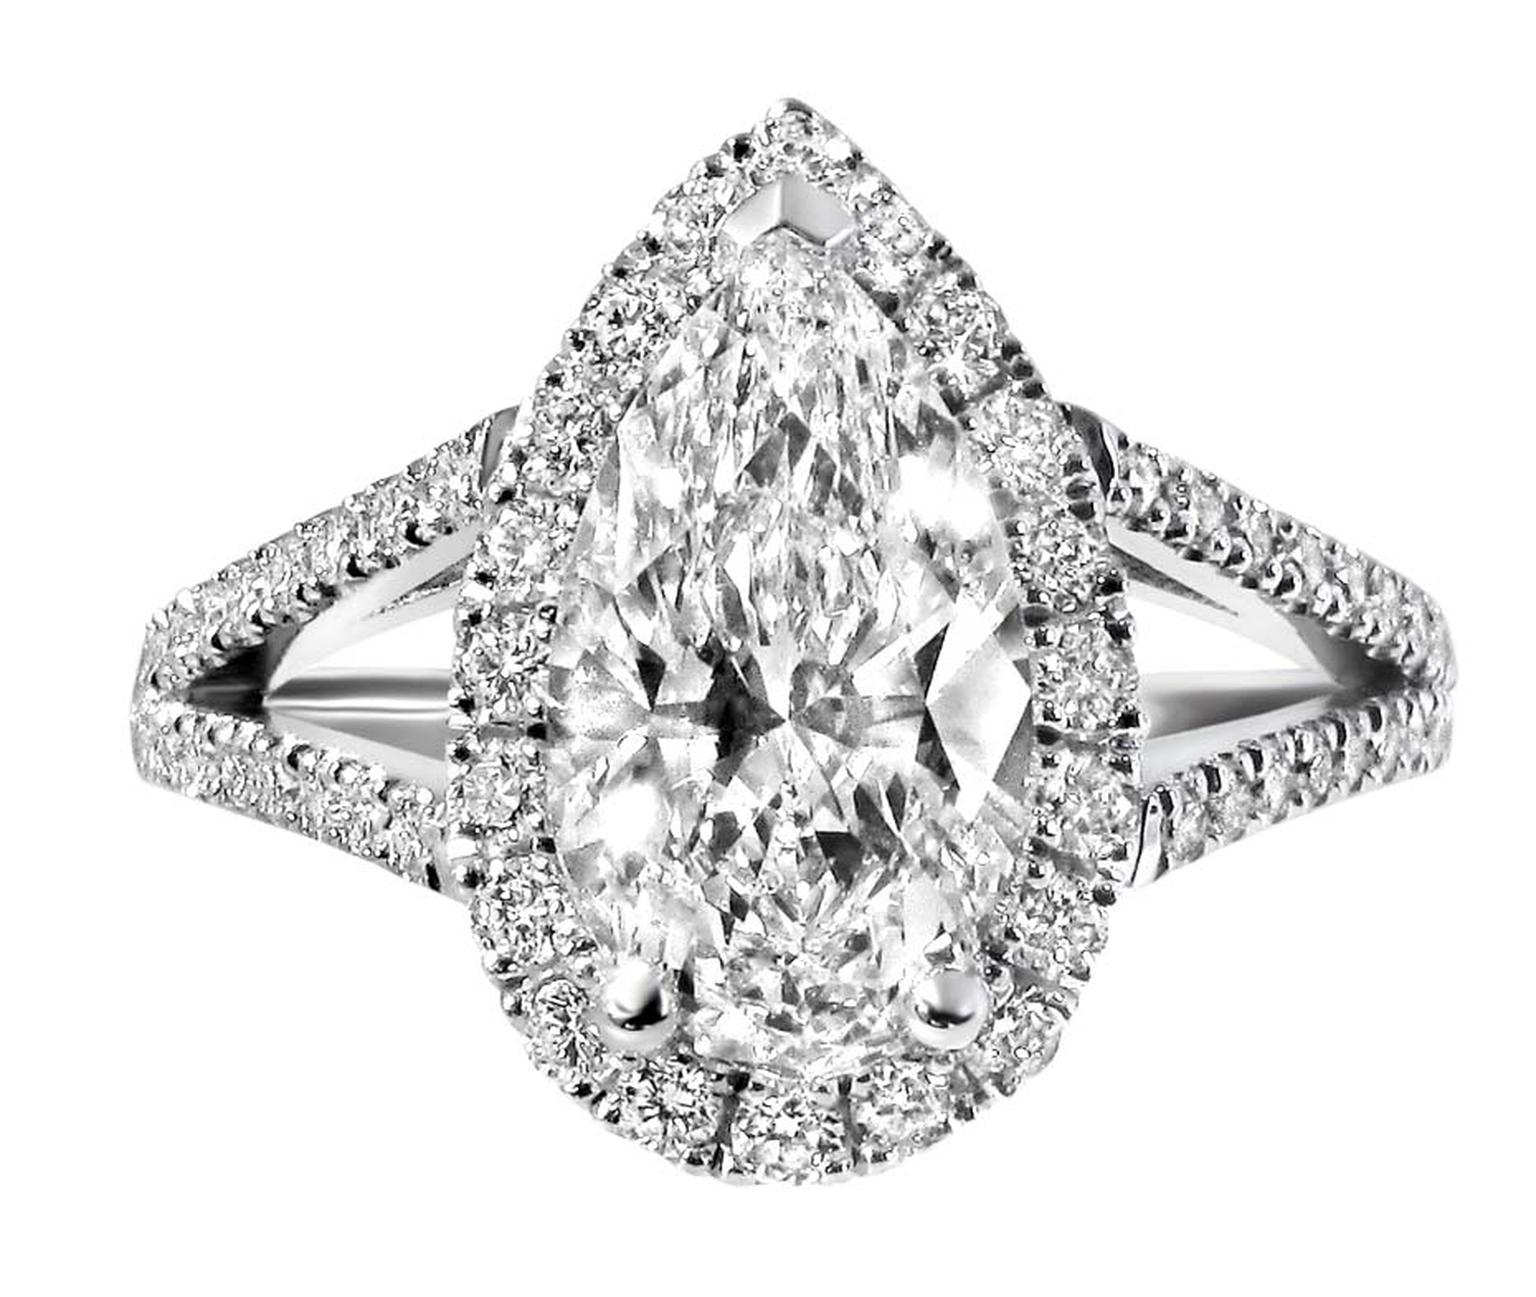 Ingle & Rhode's engagement ring features a central pear-cut Canadian diamond, surrounded by a halo of pavé diamonds.